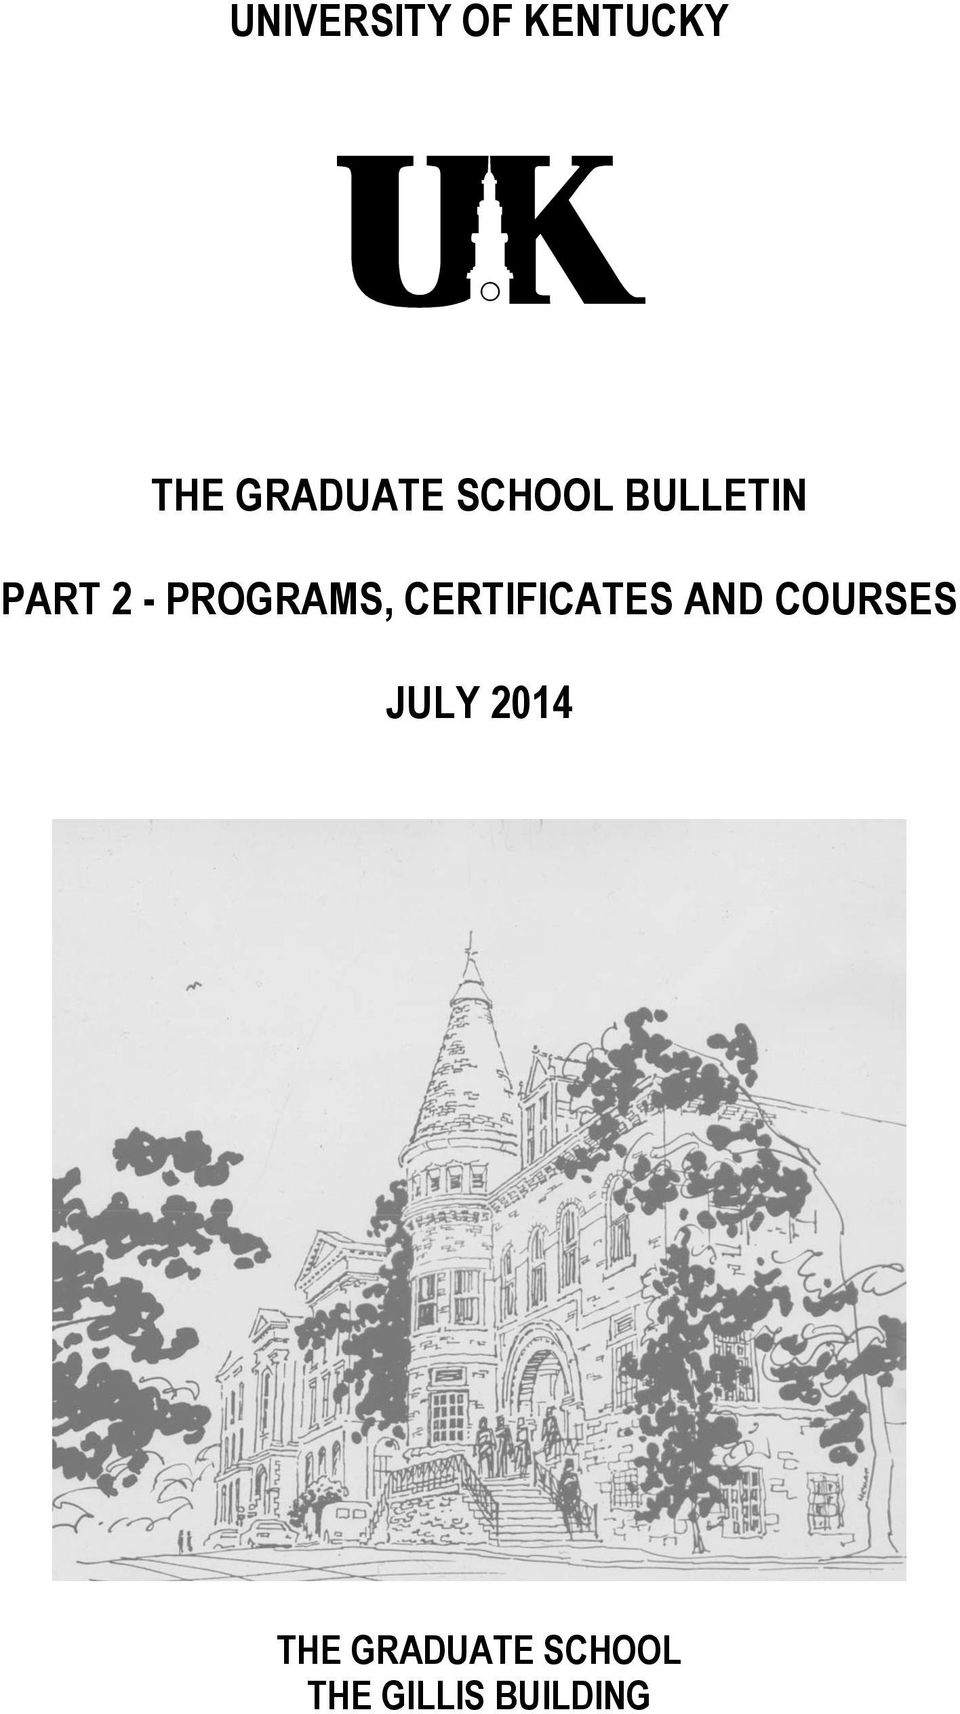 CERTIFICATES AND COURSES JULY 2014